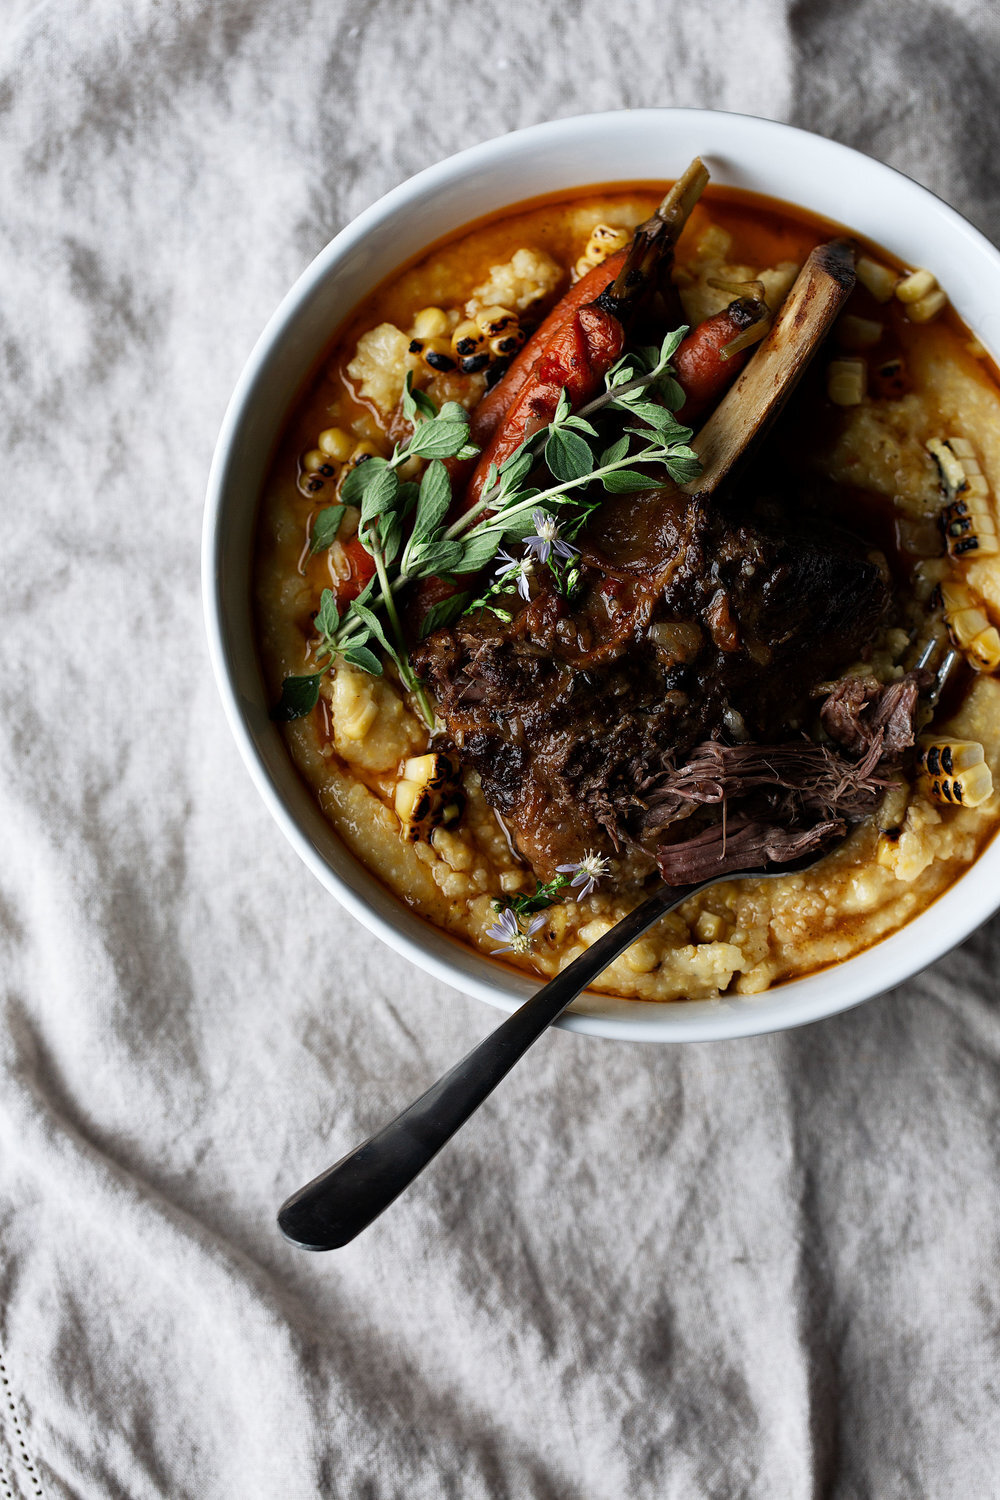 Citrus Chili Braised Short Ribs with Carrots and Charred Corn Polenta